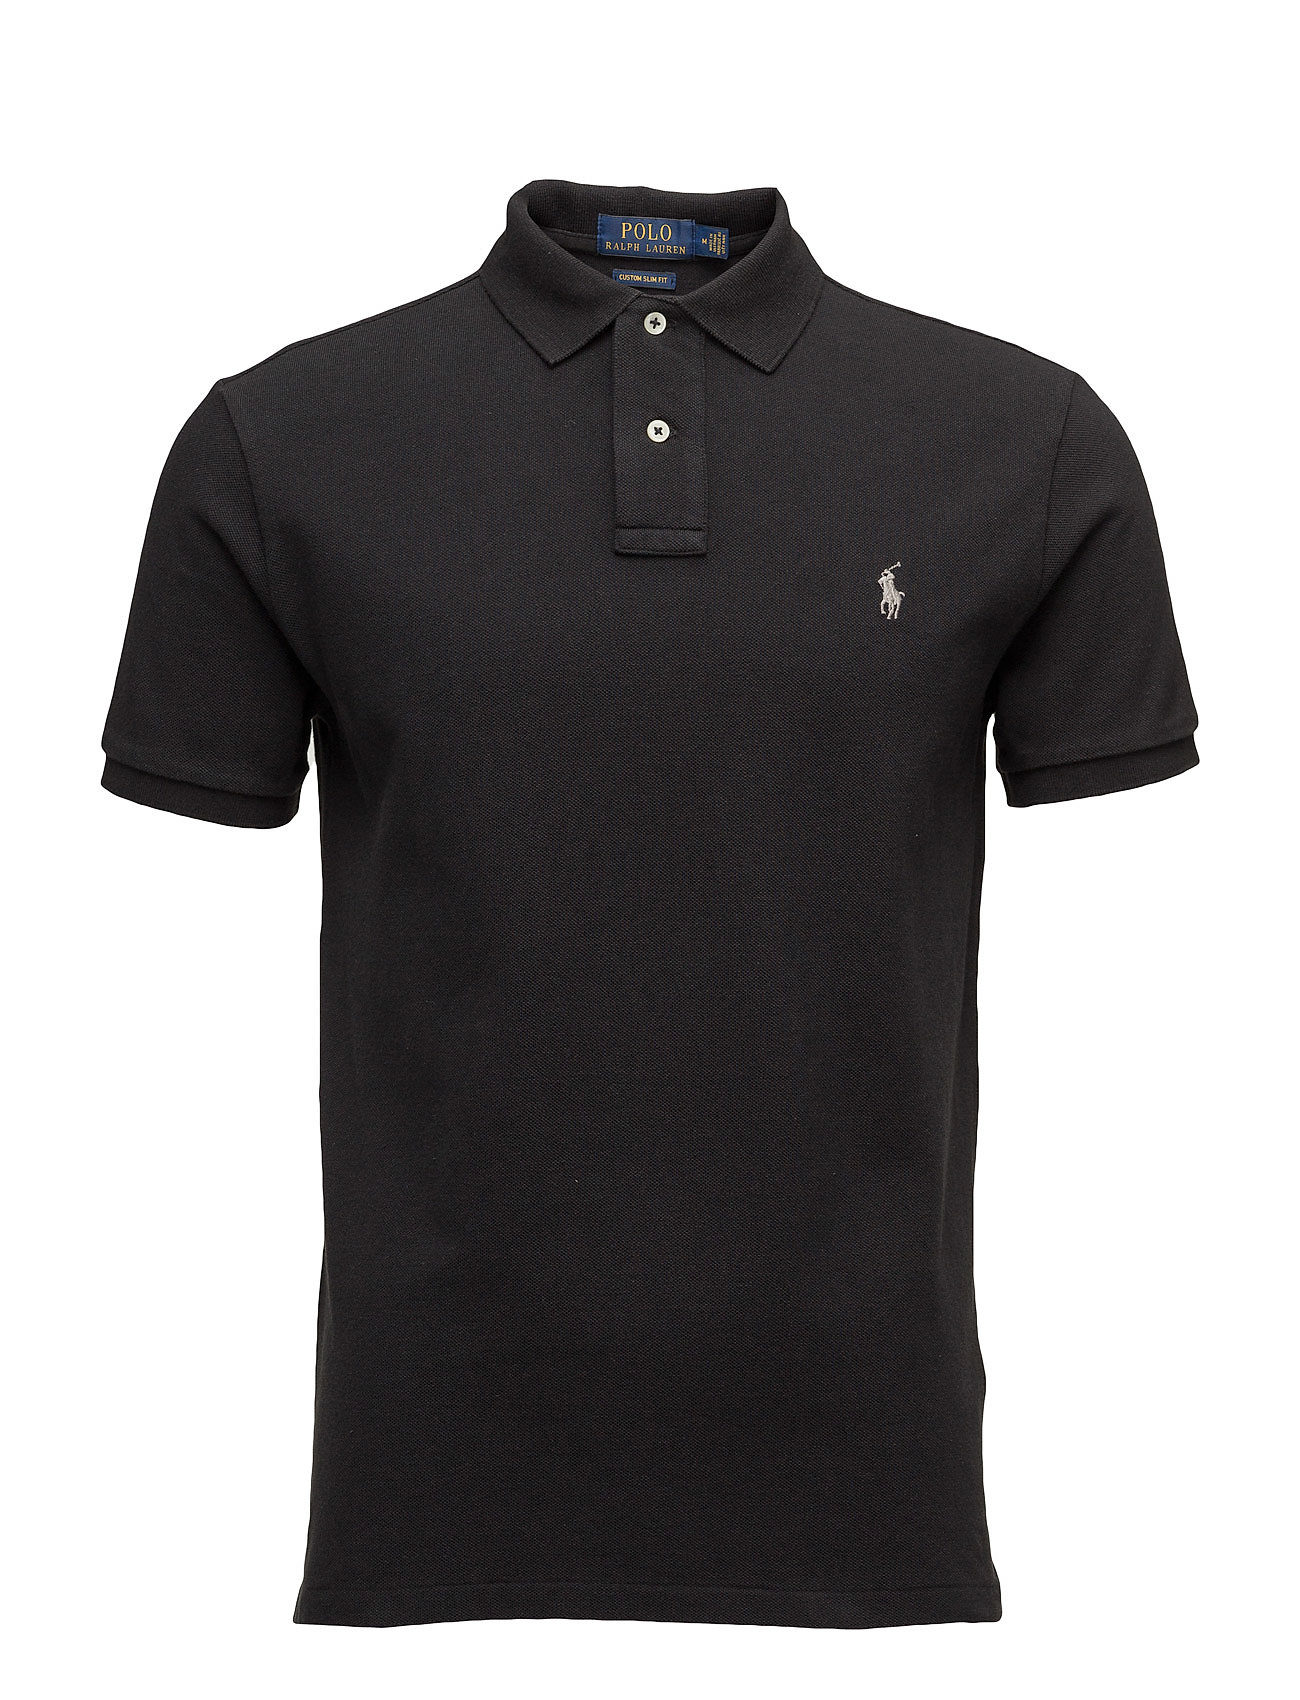 finest selection b2623 f33ea Custom Slim Fit Cotton Mesh Polo